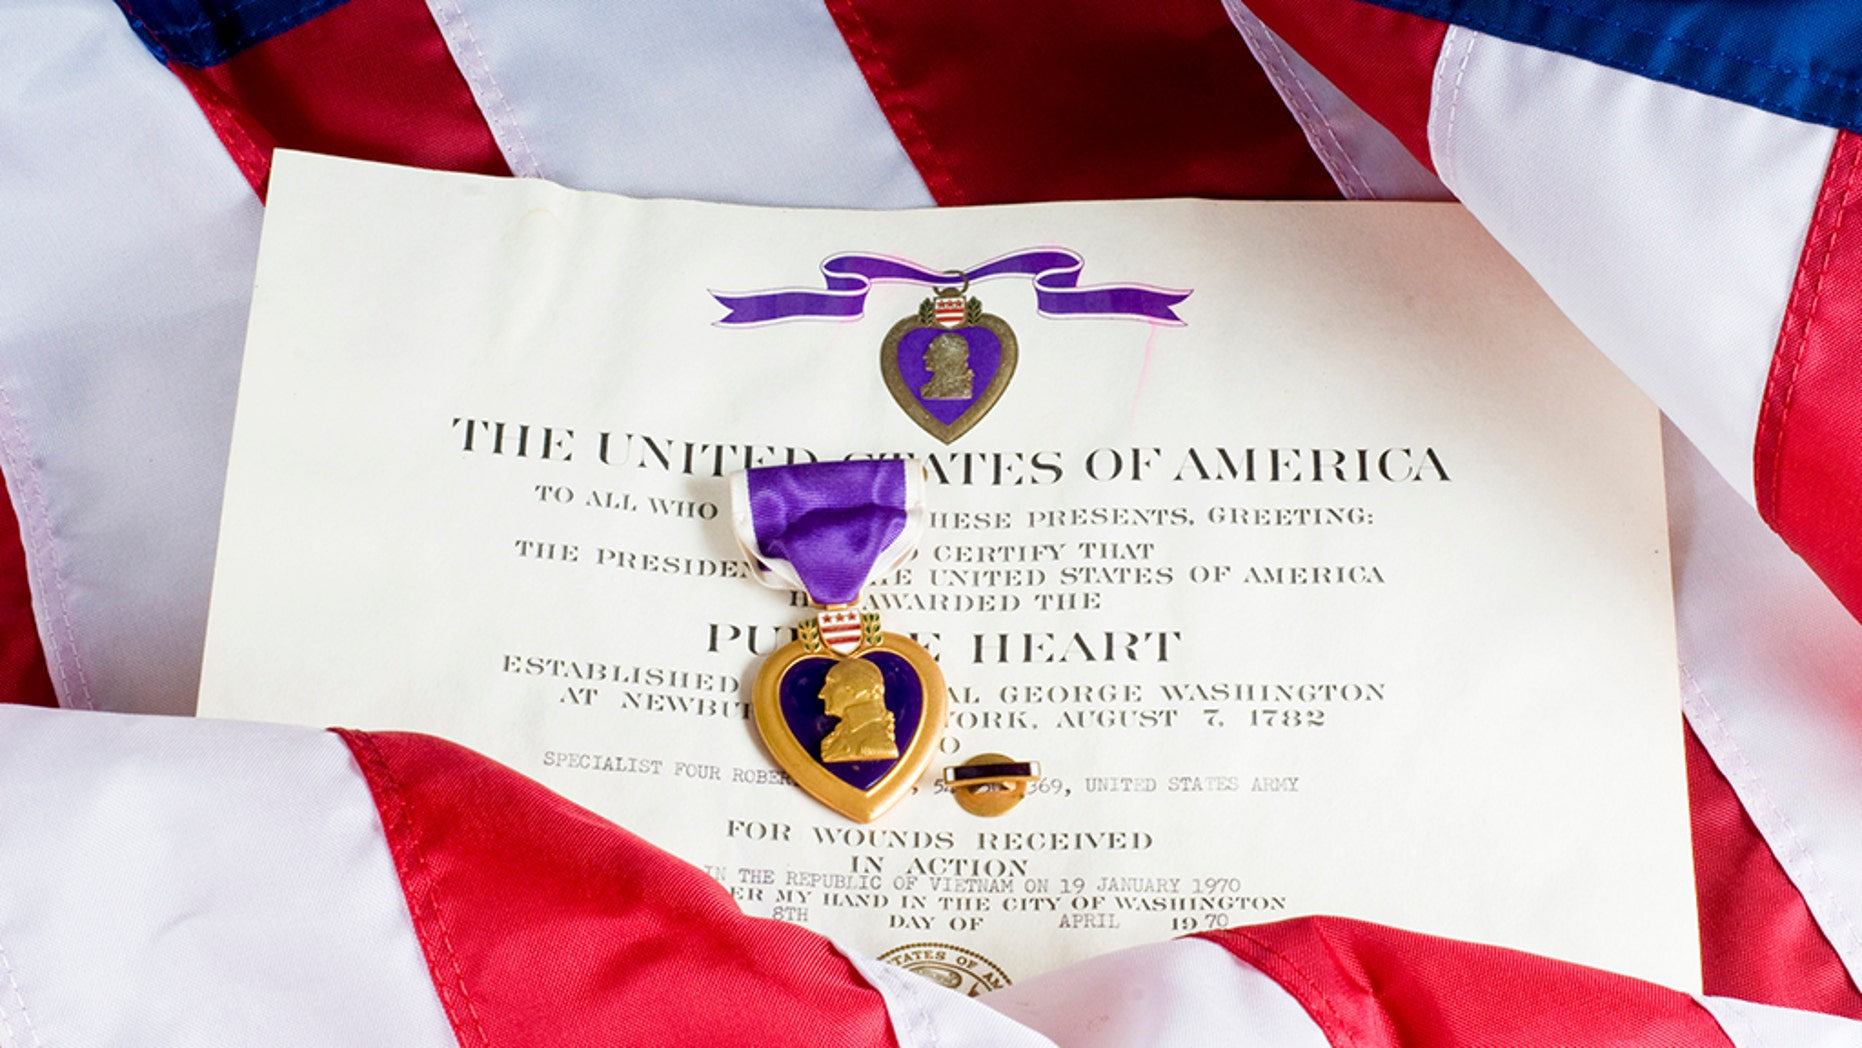 President Trump on Tuesday commemorated Purple Heart Day, in which military members who have been injured or killed while serving the U.S. are recognized.